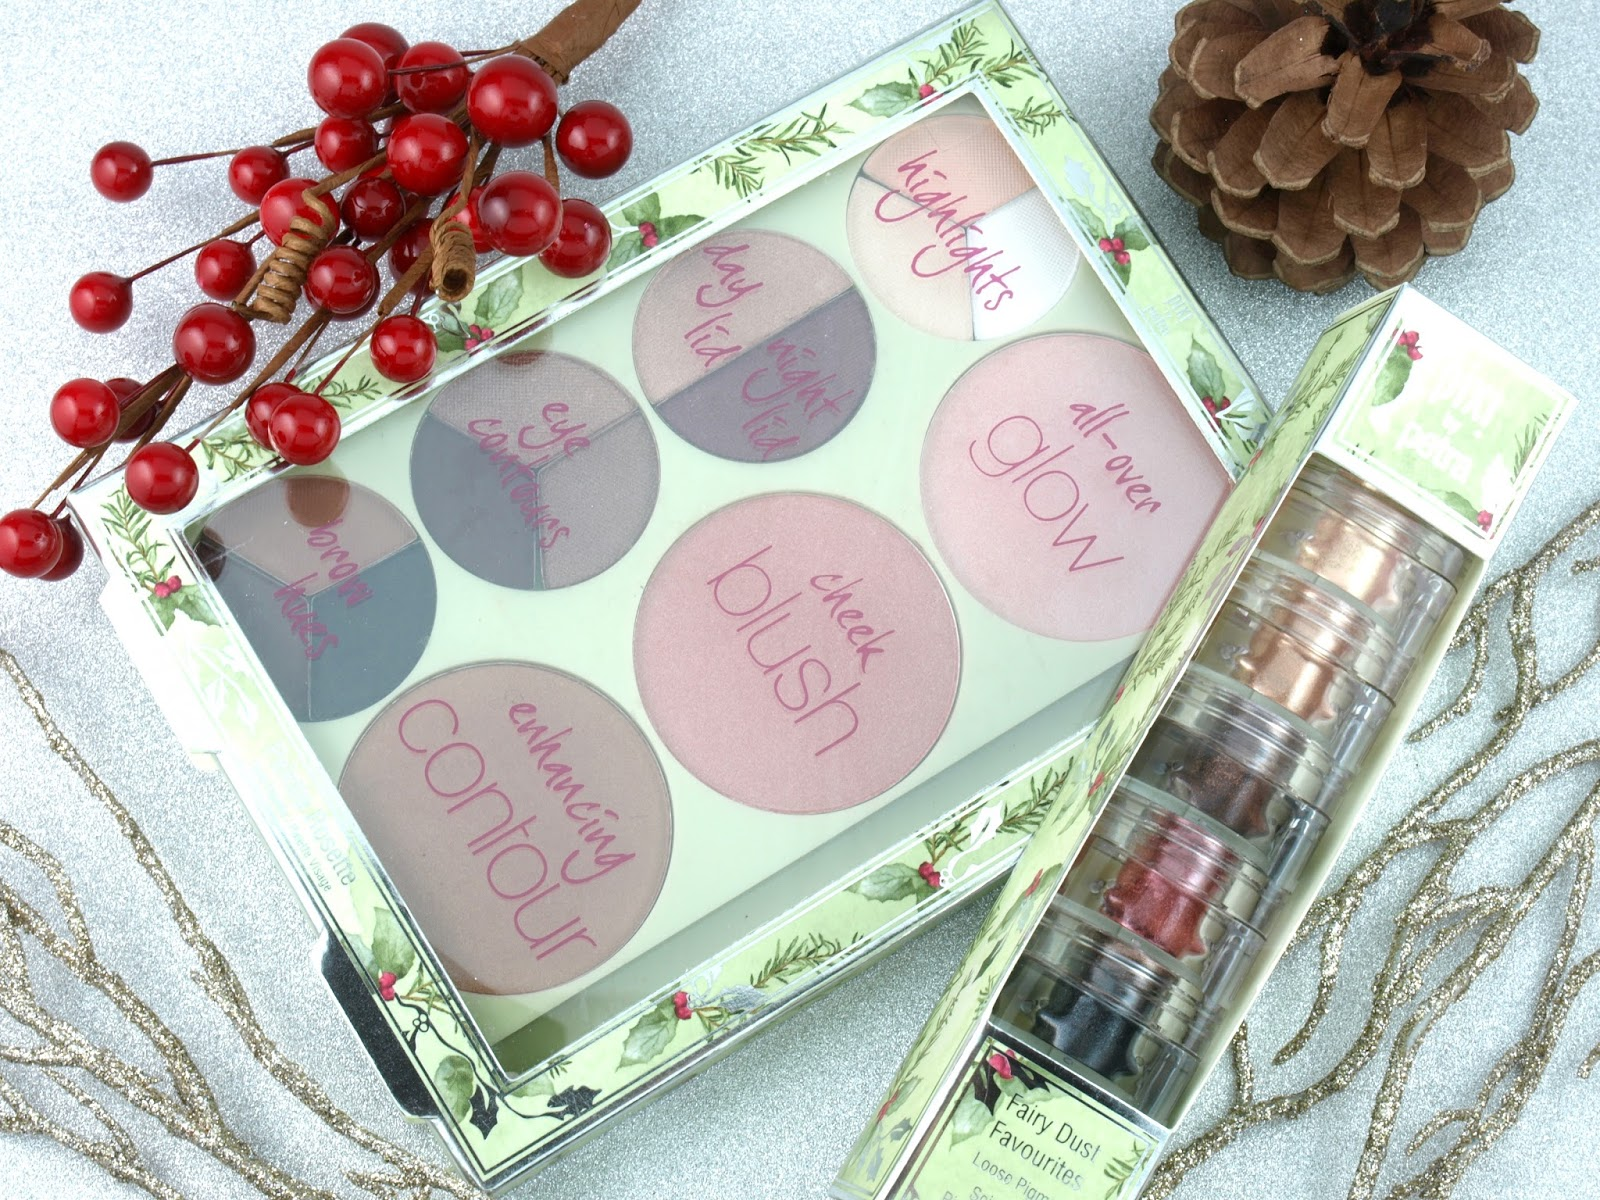 Pixi Palette Rosette & Fairy Dust Favorites: Review and Swatches